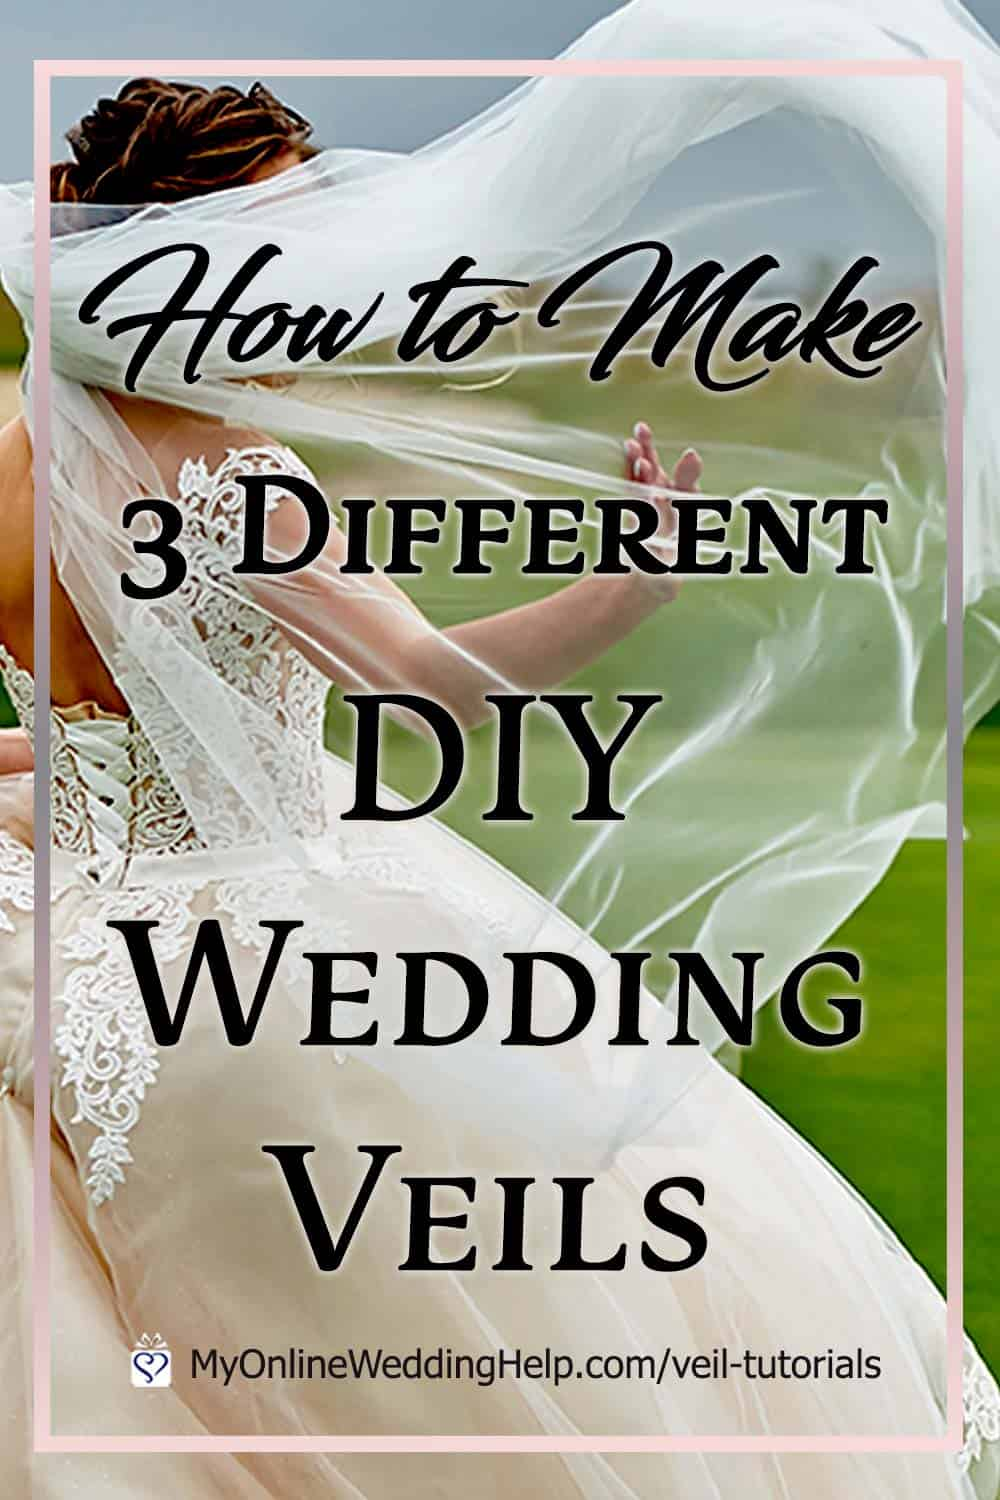 How to Make Three Different DIY Wedding Veils